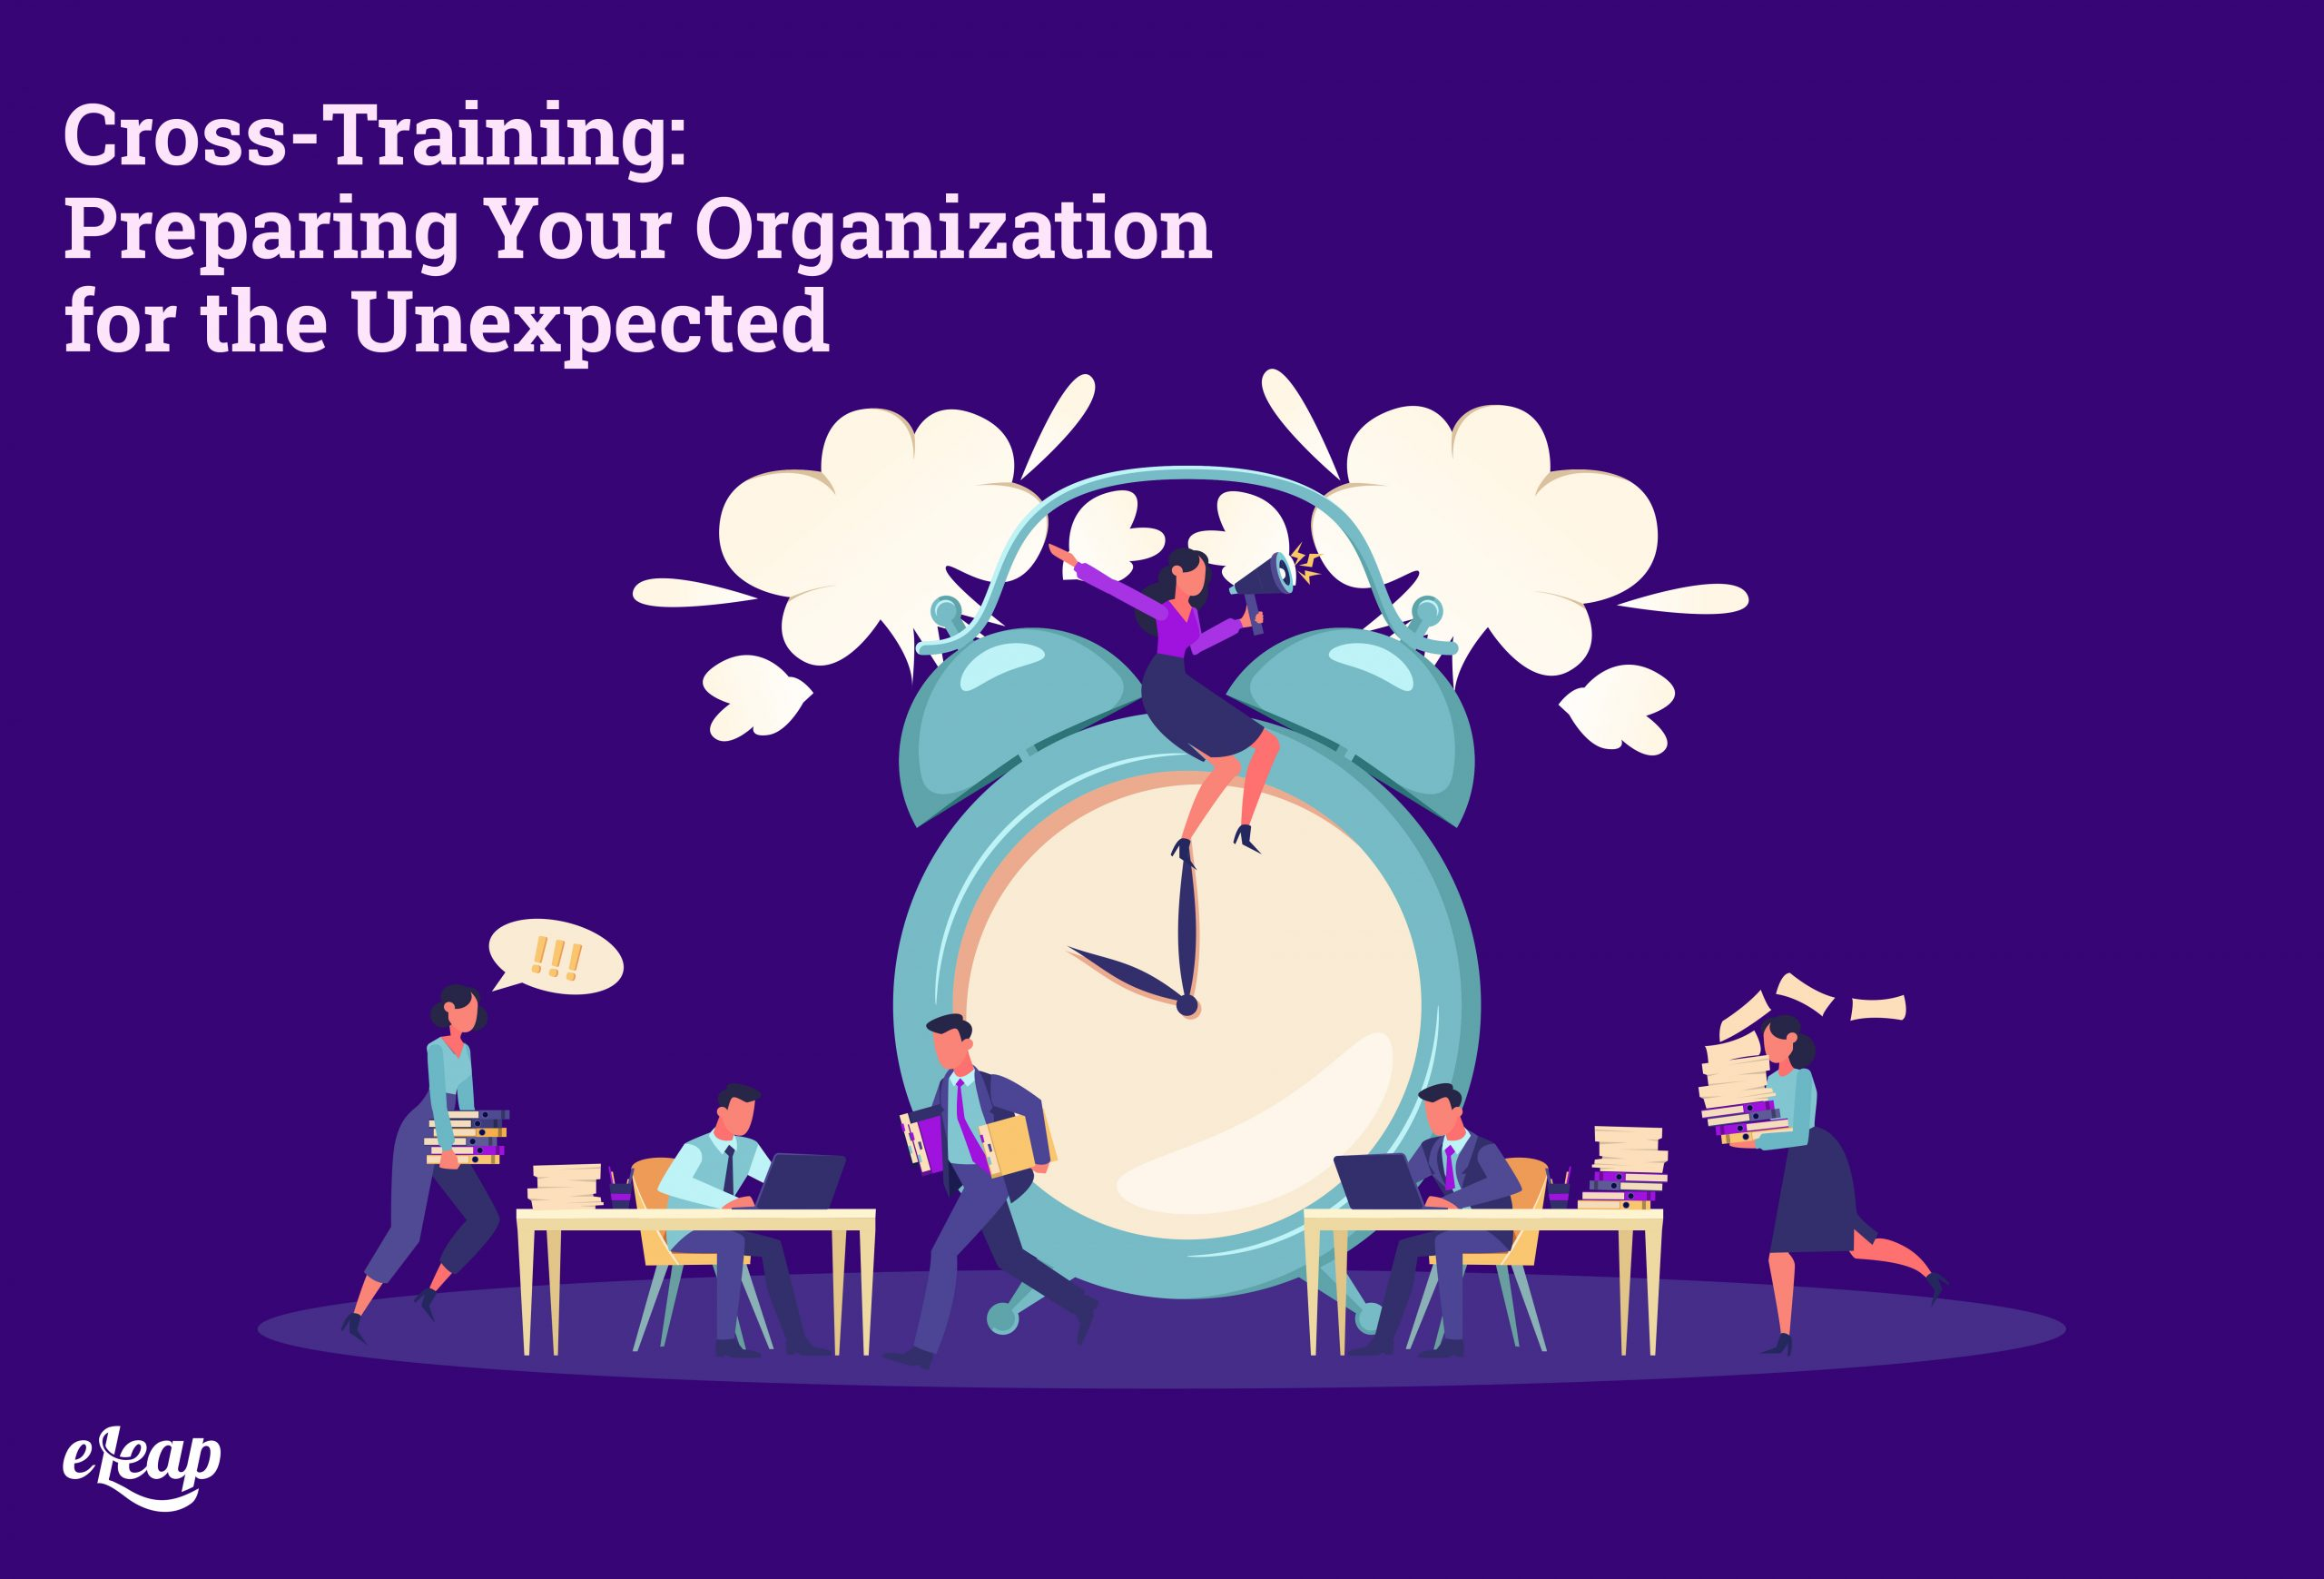 Cross-Training: Preparing Your Organization for the Unexpected